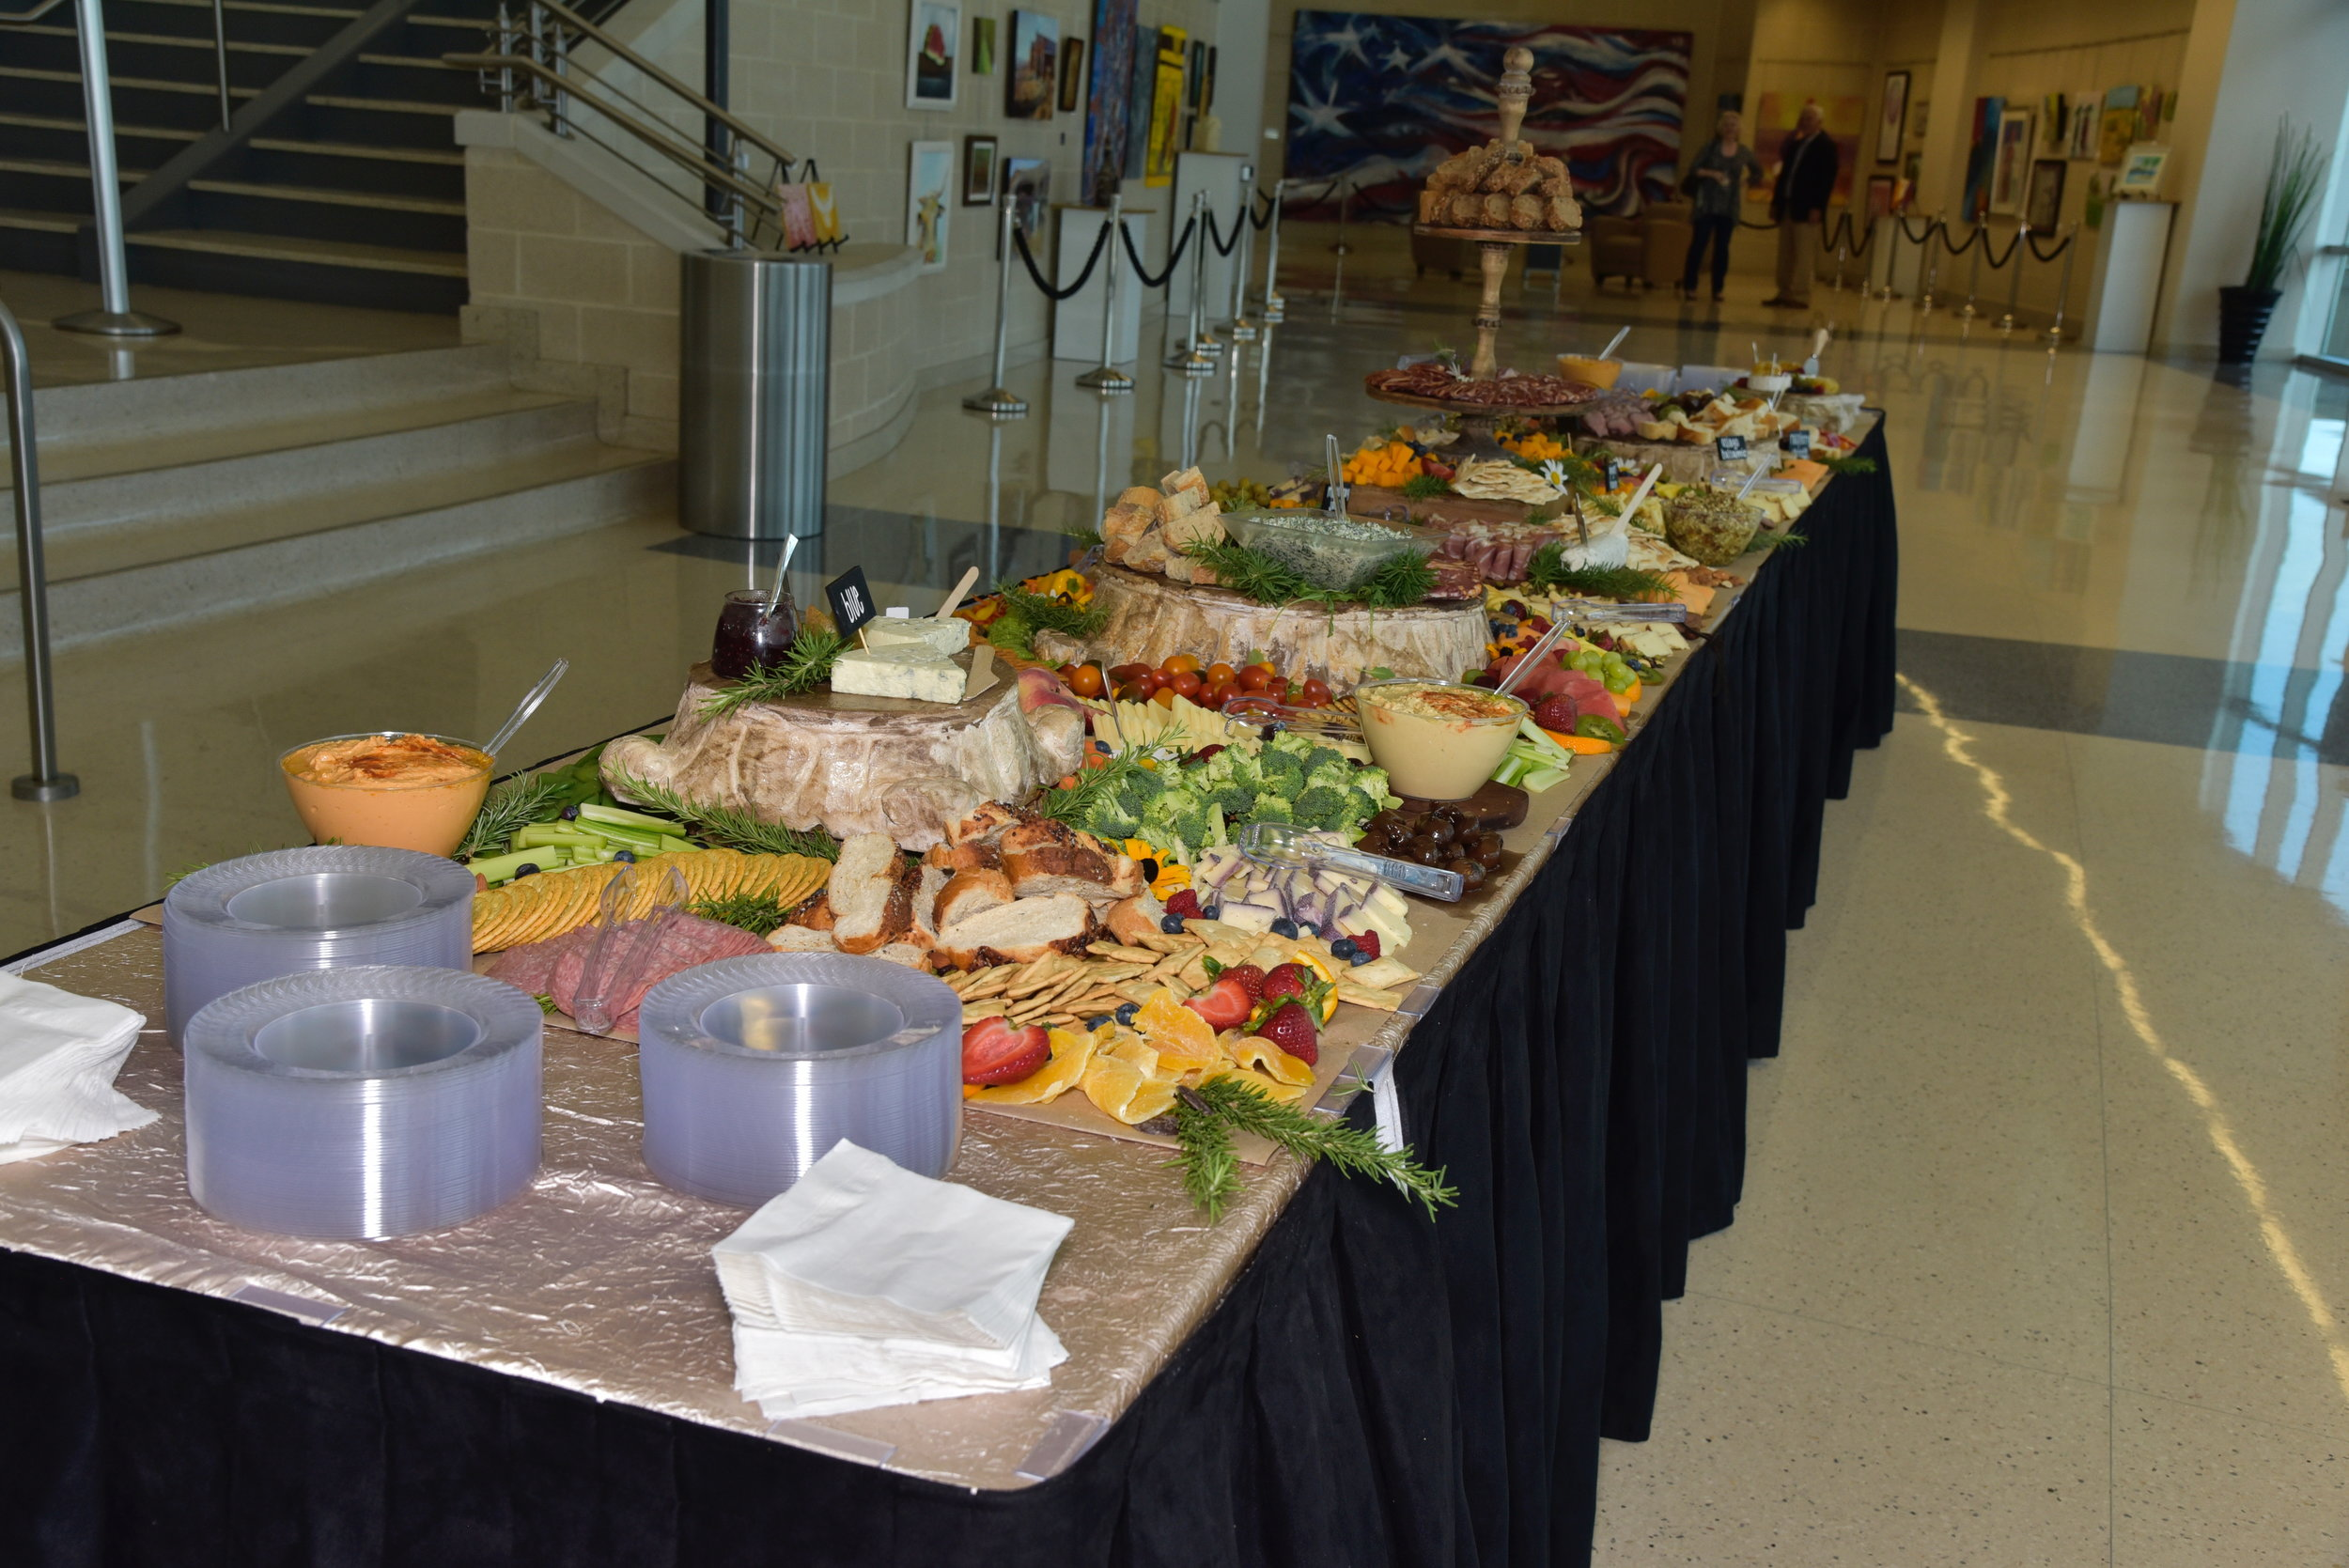 Inspirations Catering provided the charcuterie table to the delight of all participants.